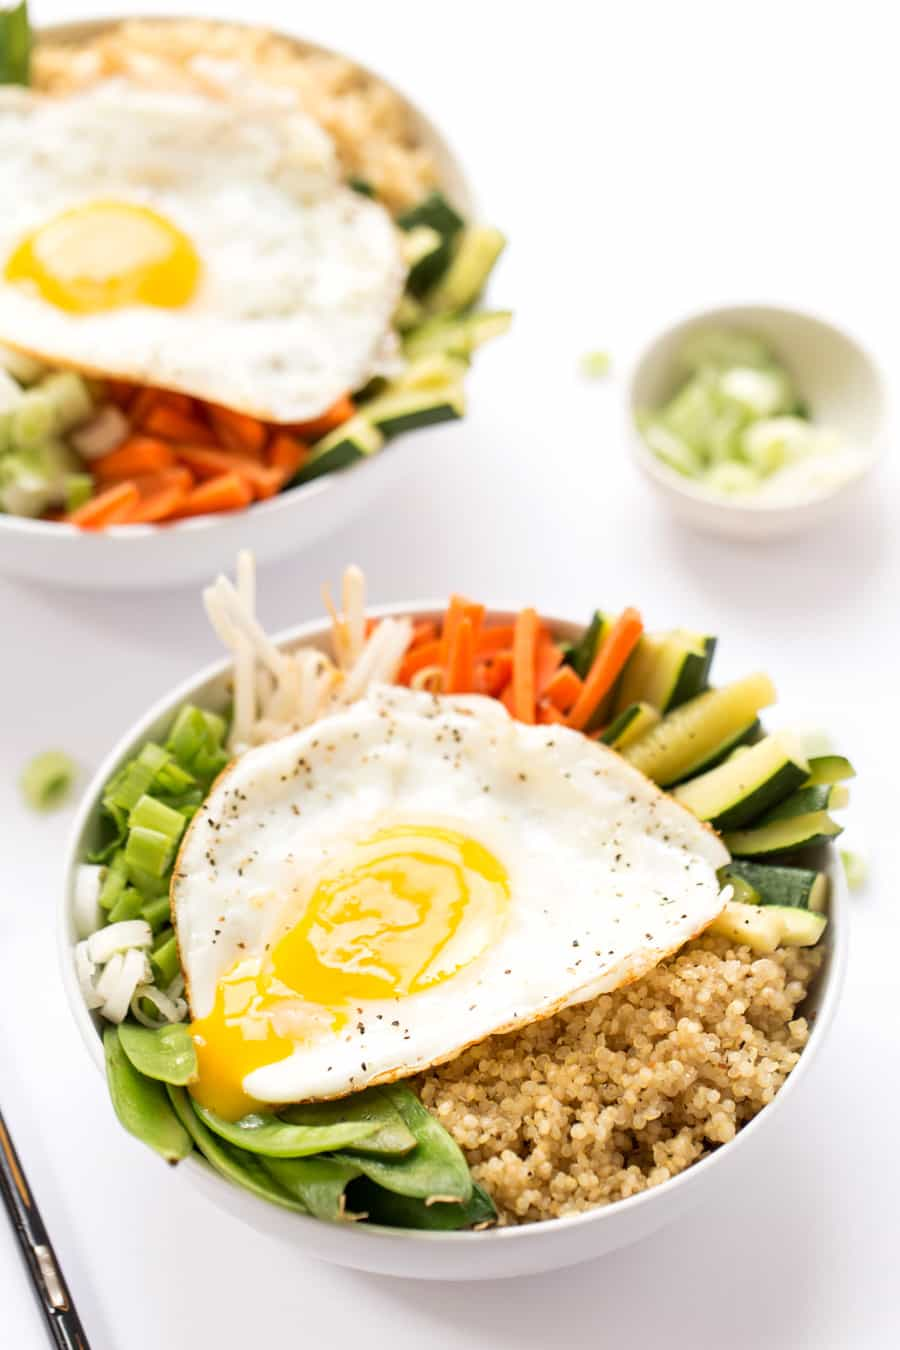 A healthy spin on this Korean staple, this QUINOA BIBIMBAP, made with fluffy quinoa, steamed vegetables and a fried egg, is a great alternative to takeout!